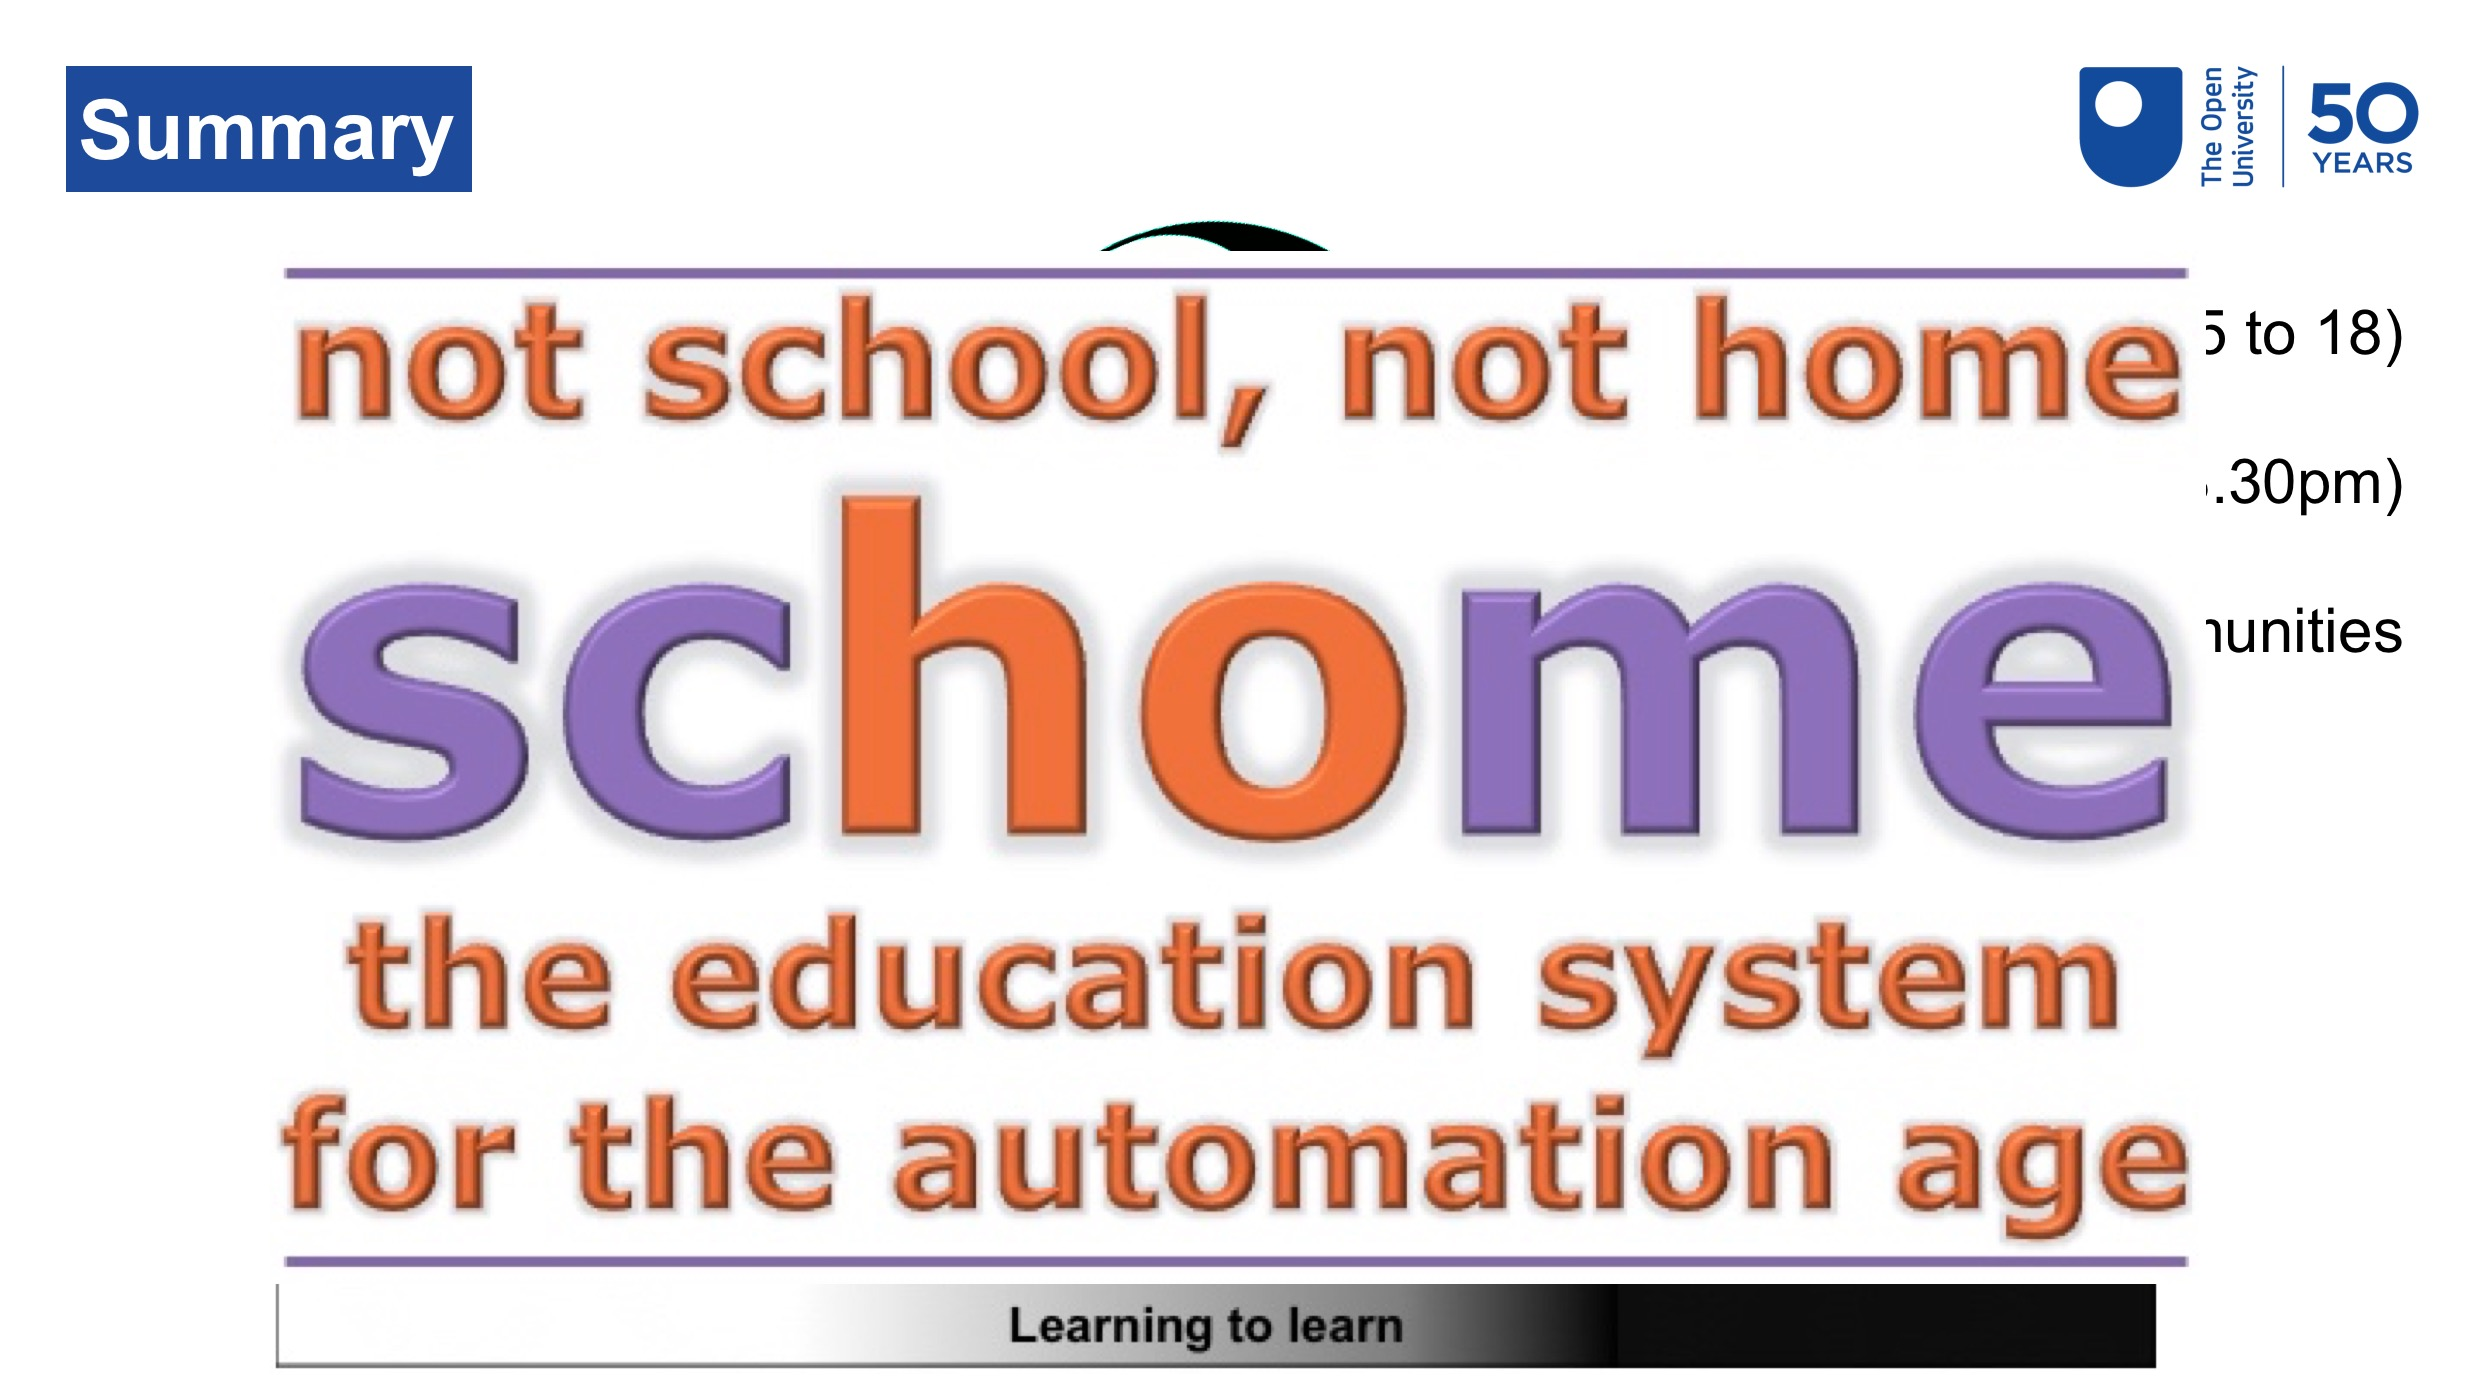 Not school, not home, schome, the education system for the automation age